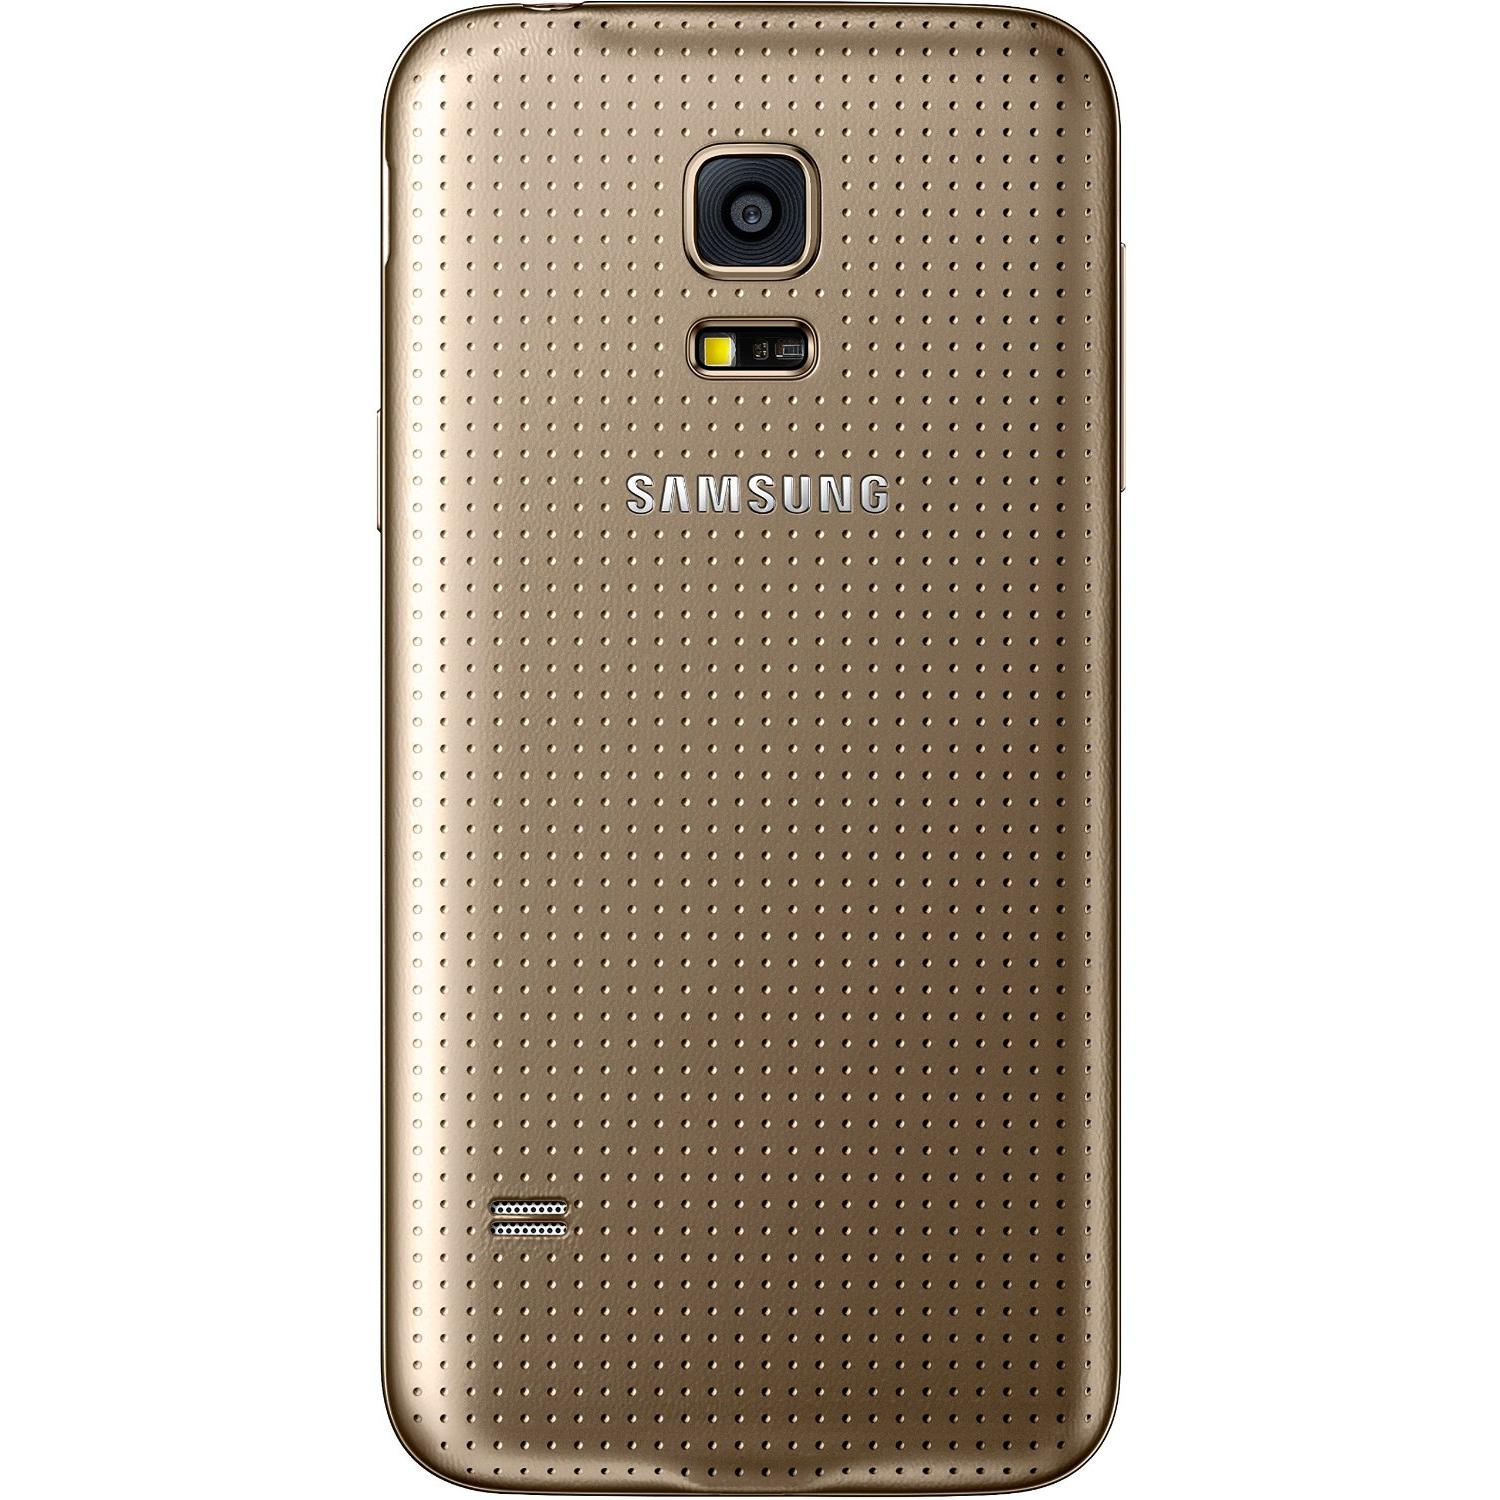 Samsung Galaxy S5 Mini 16 GB G800F 4G - Gold - SFR